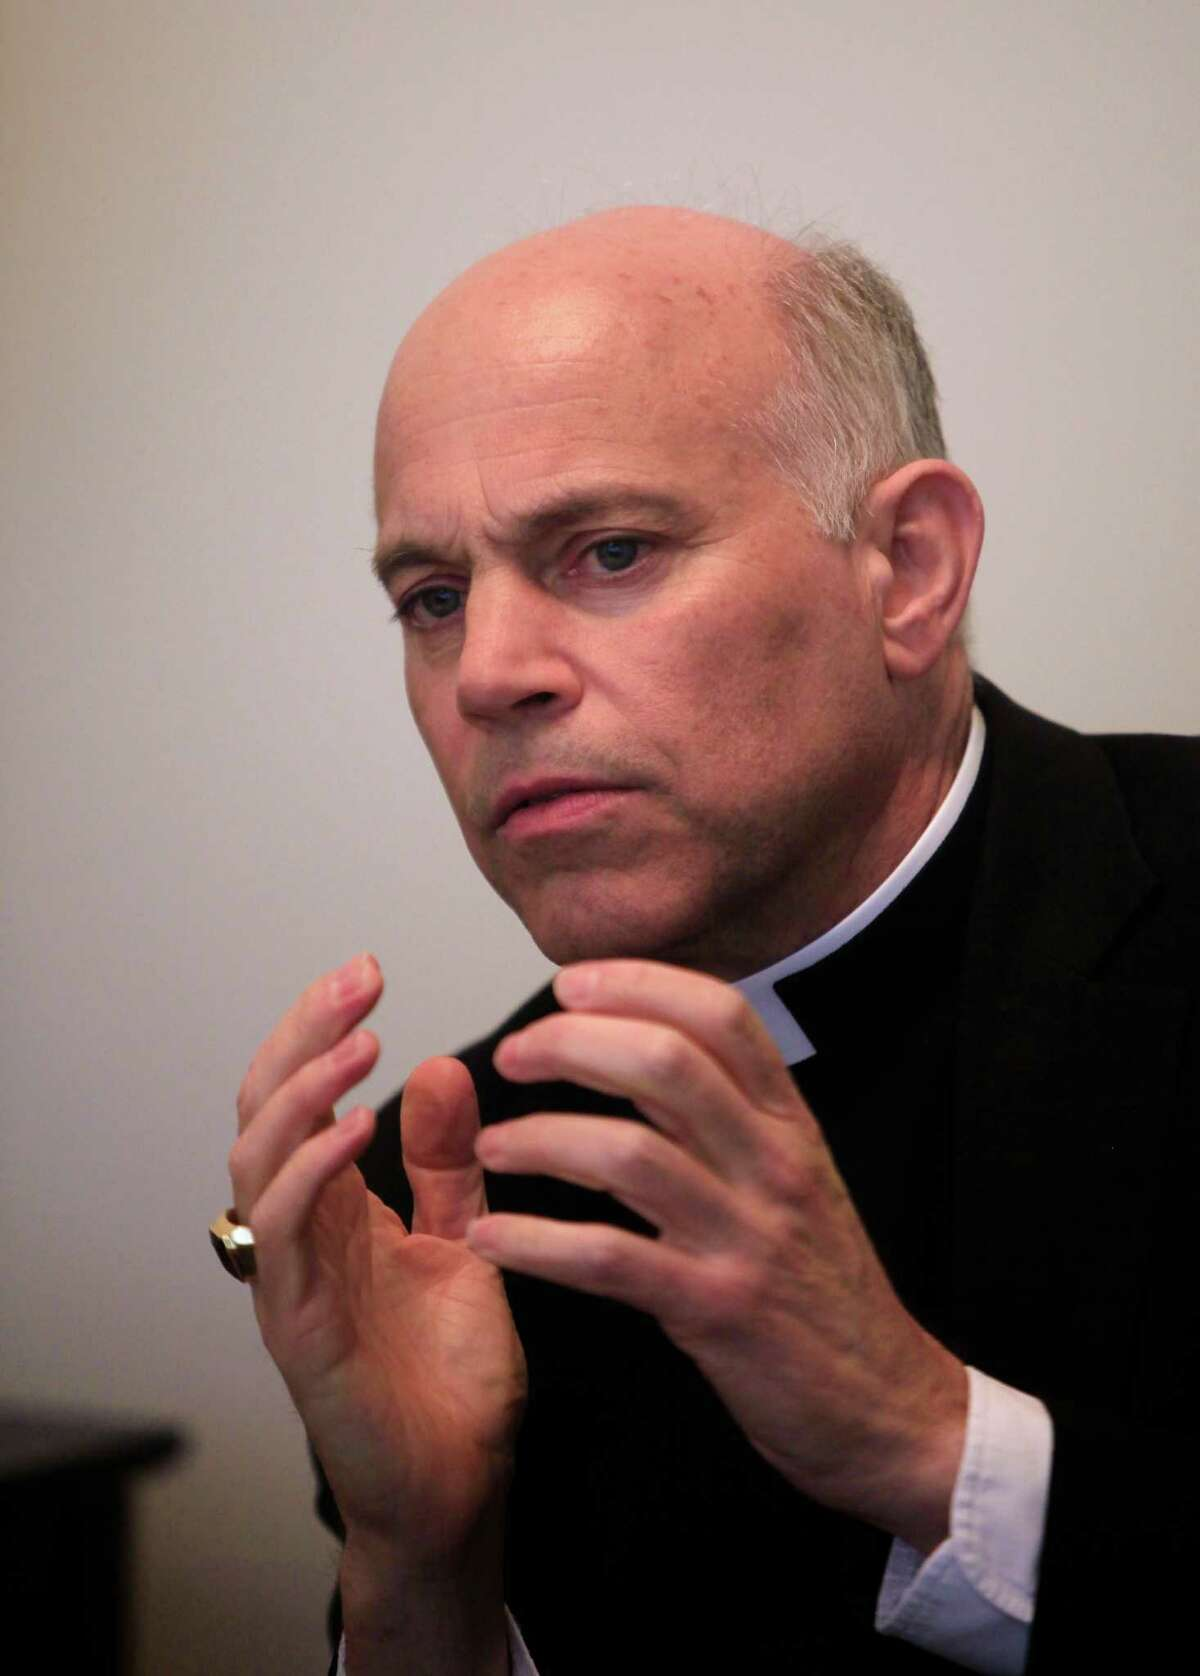 Archbishop Salvatore Cordileone is seen at the Archdiocese of San Francisco on Thursday, June 6, 2013 in San Francisco, Calif.